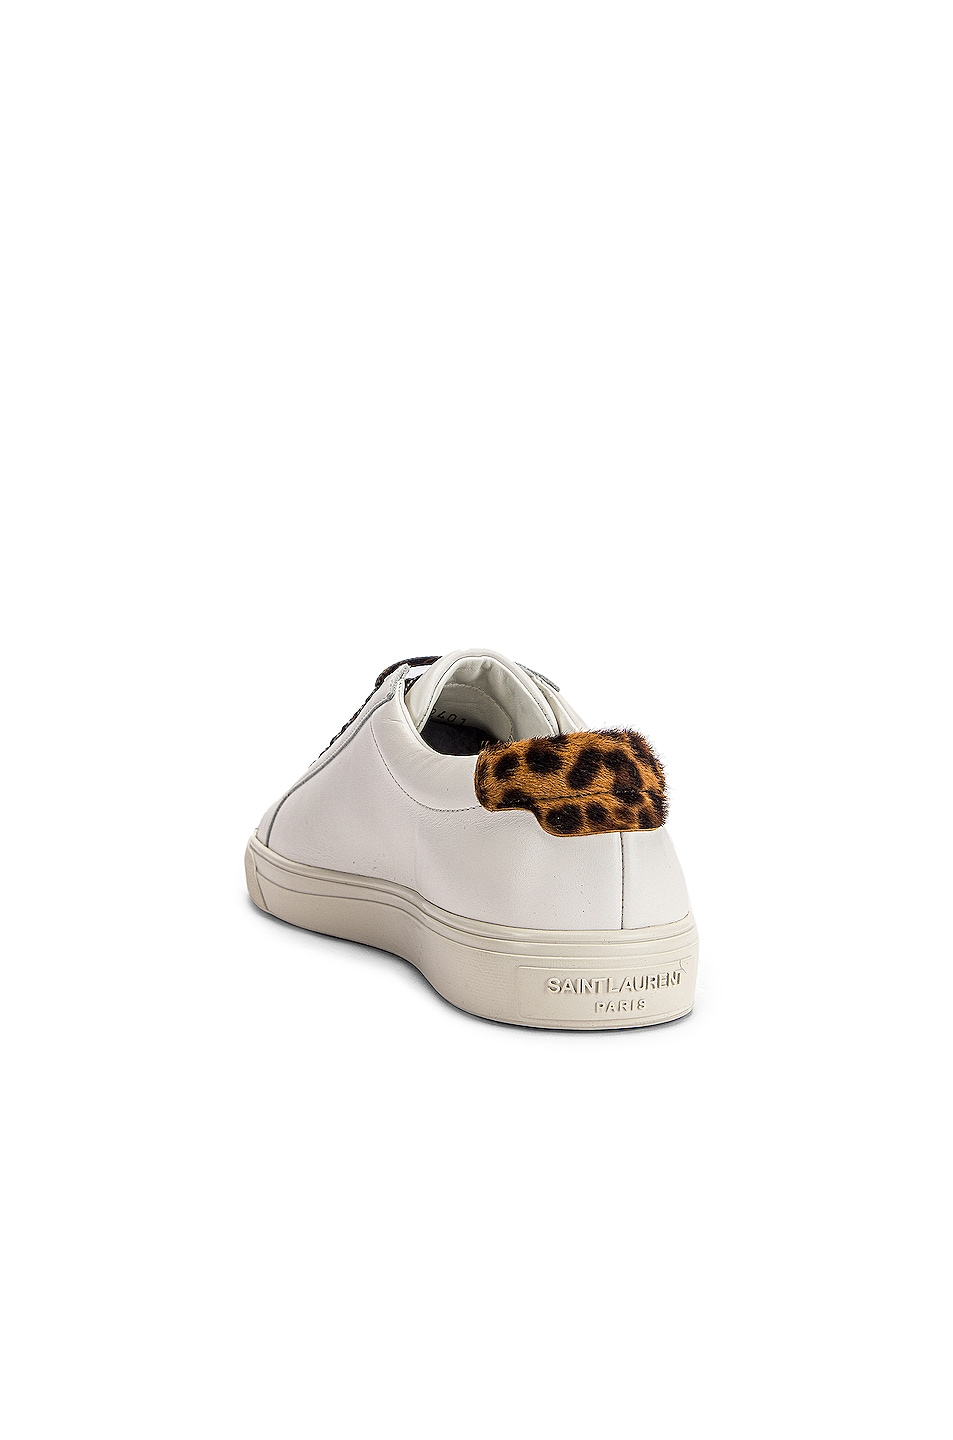 Image 3 of Saint Laurent Low Top Andy Sneakers in White & Natural